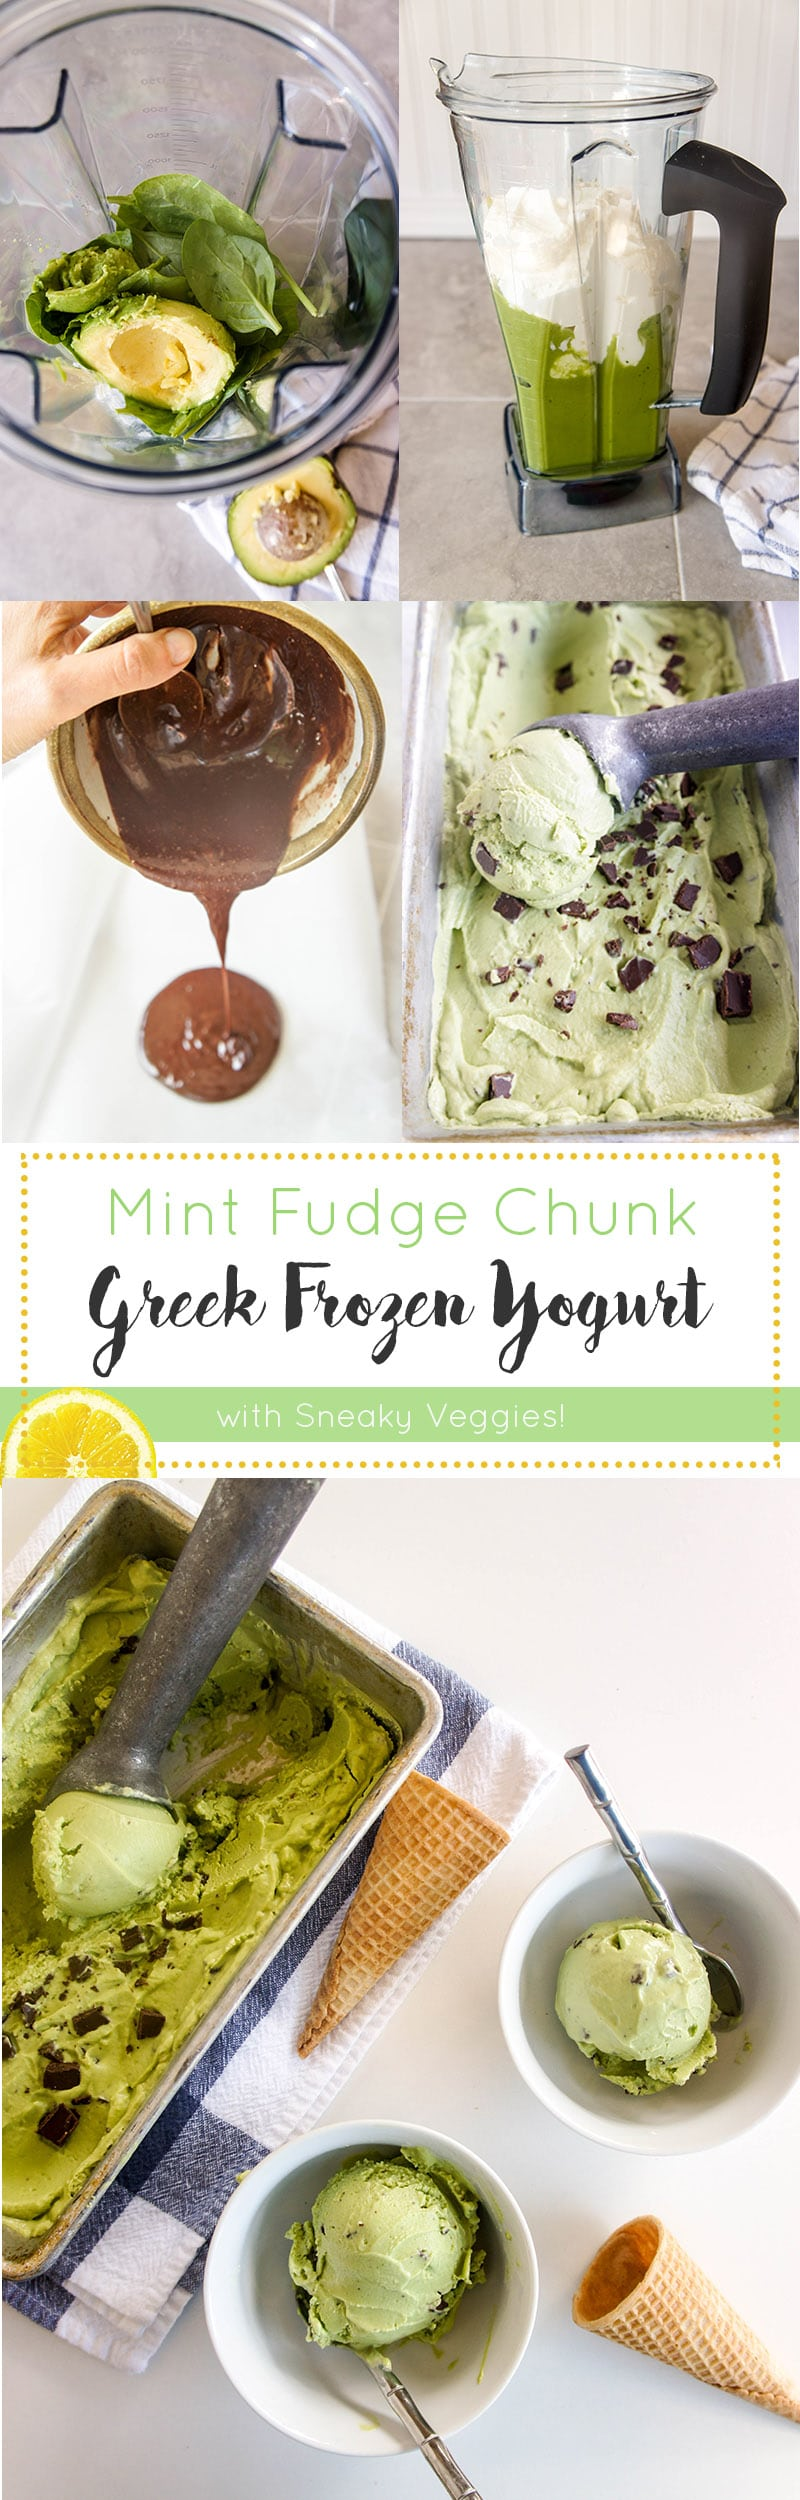 Mint Fudge Chunk Frozen Yogurt / This is no ordinary ice cream! Made with 2 green veggies and greek yogurt, it packs a serious nutritional punch!